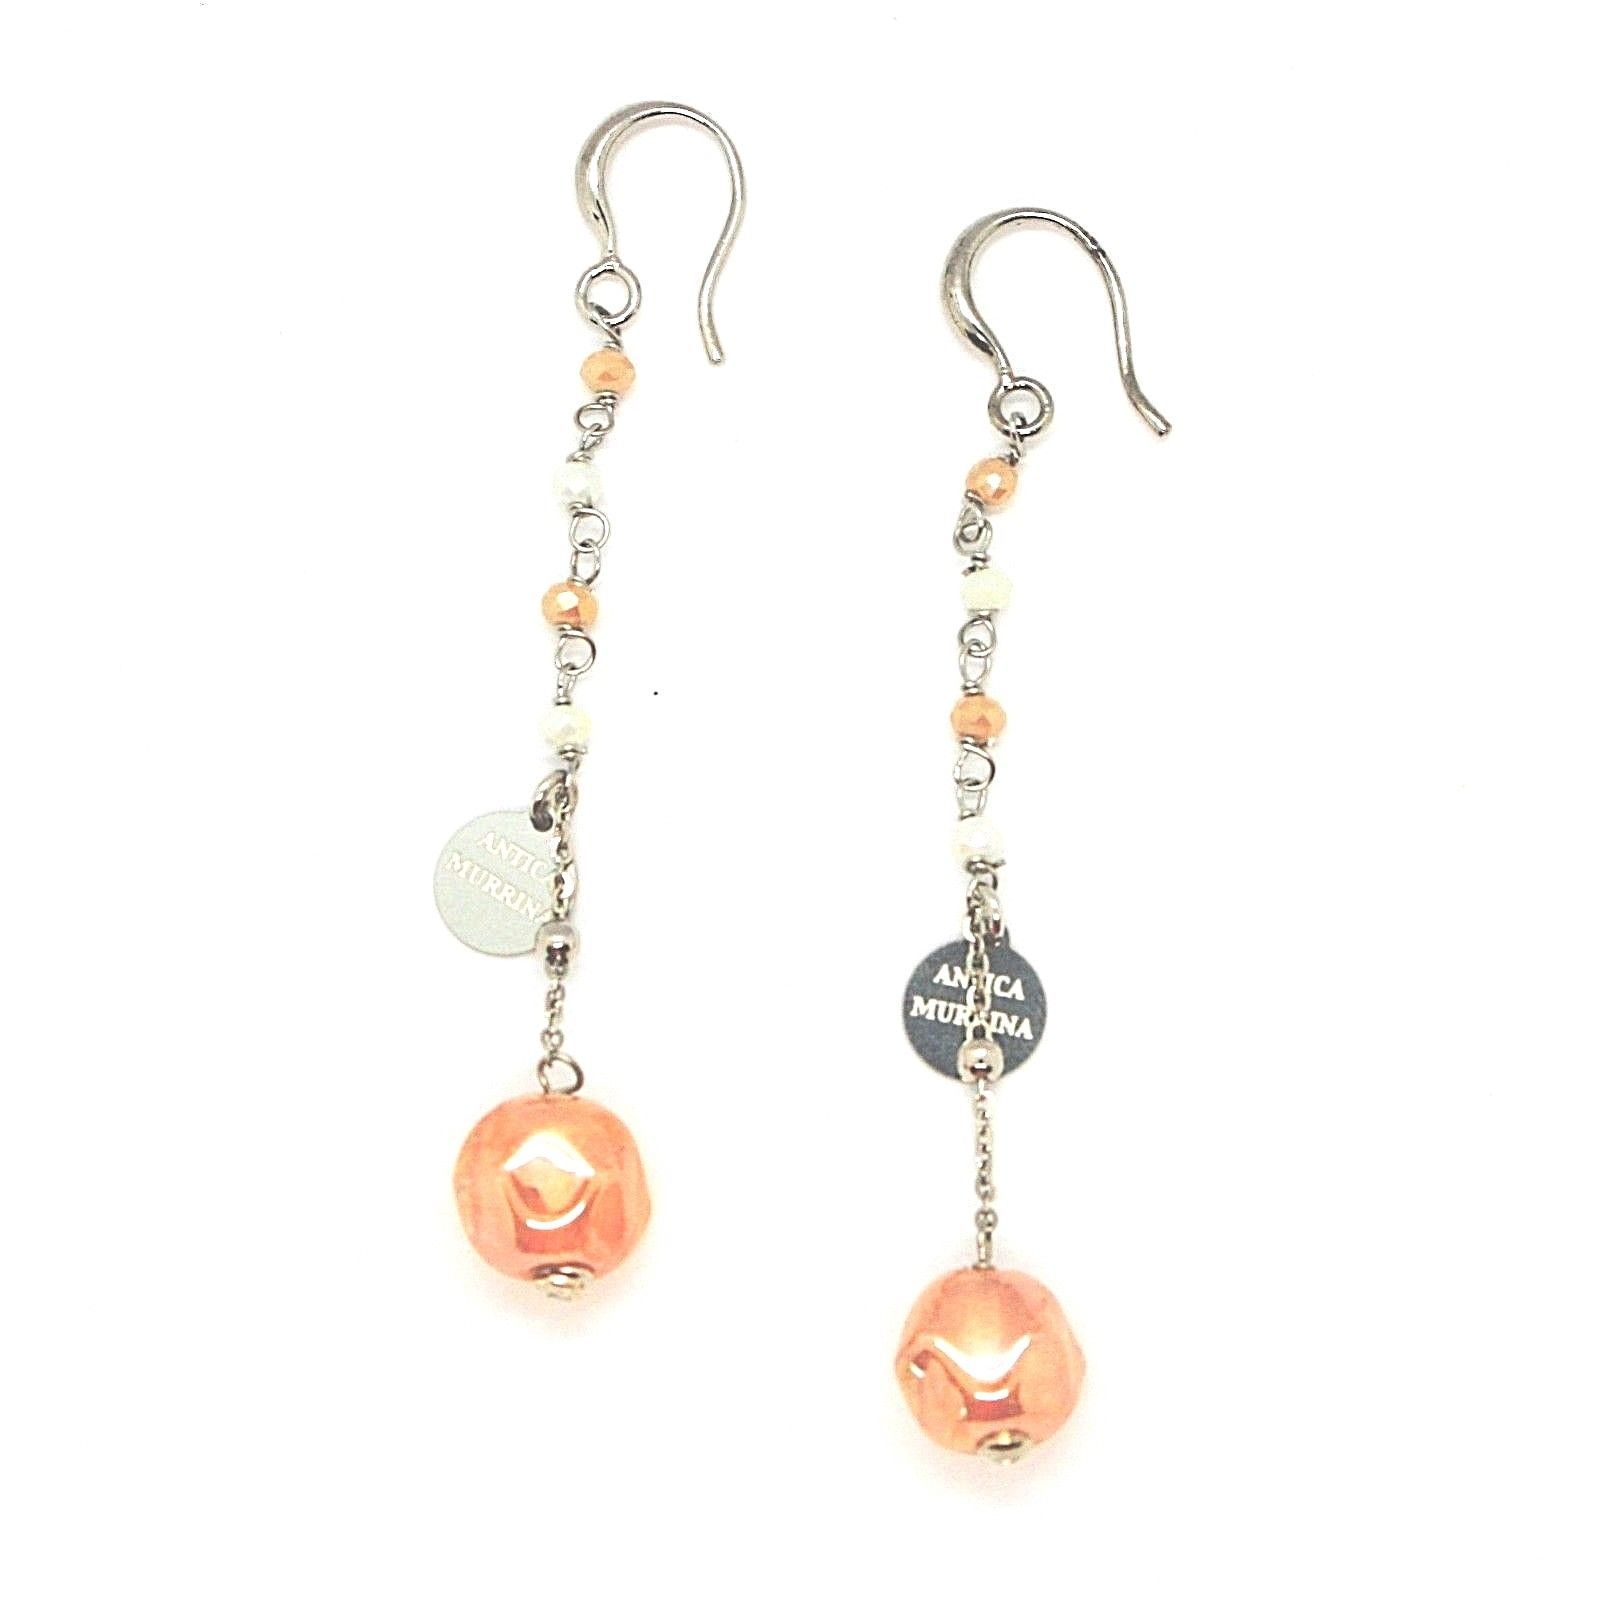 EARRINGS ANTICA MURRINA VENEZIA WITH MURANO GLASS YELLOW AND BEIGE OR564A10